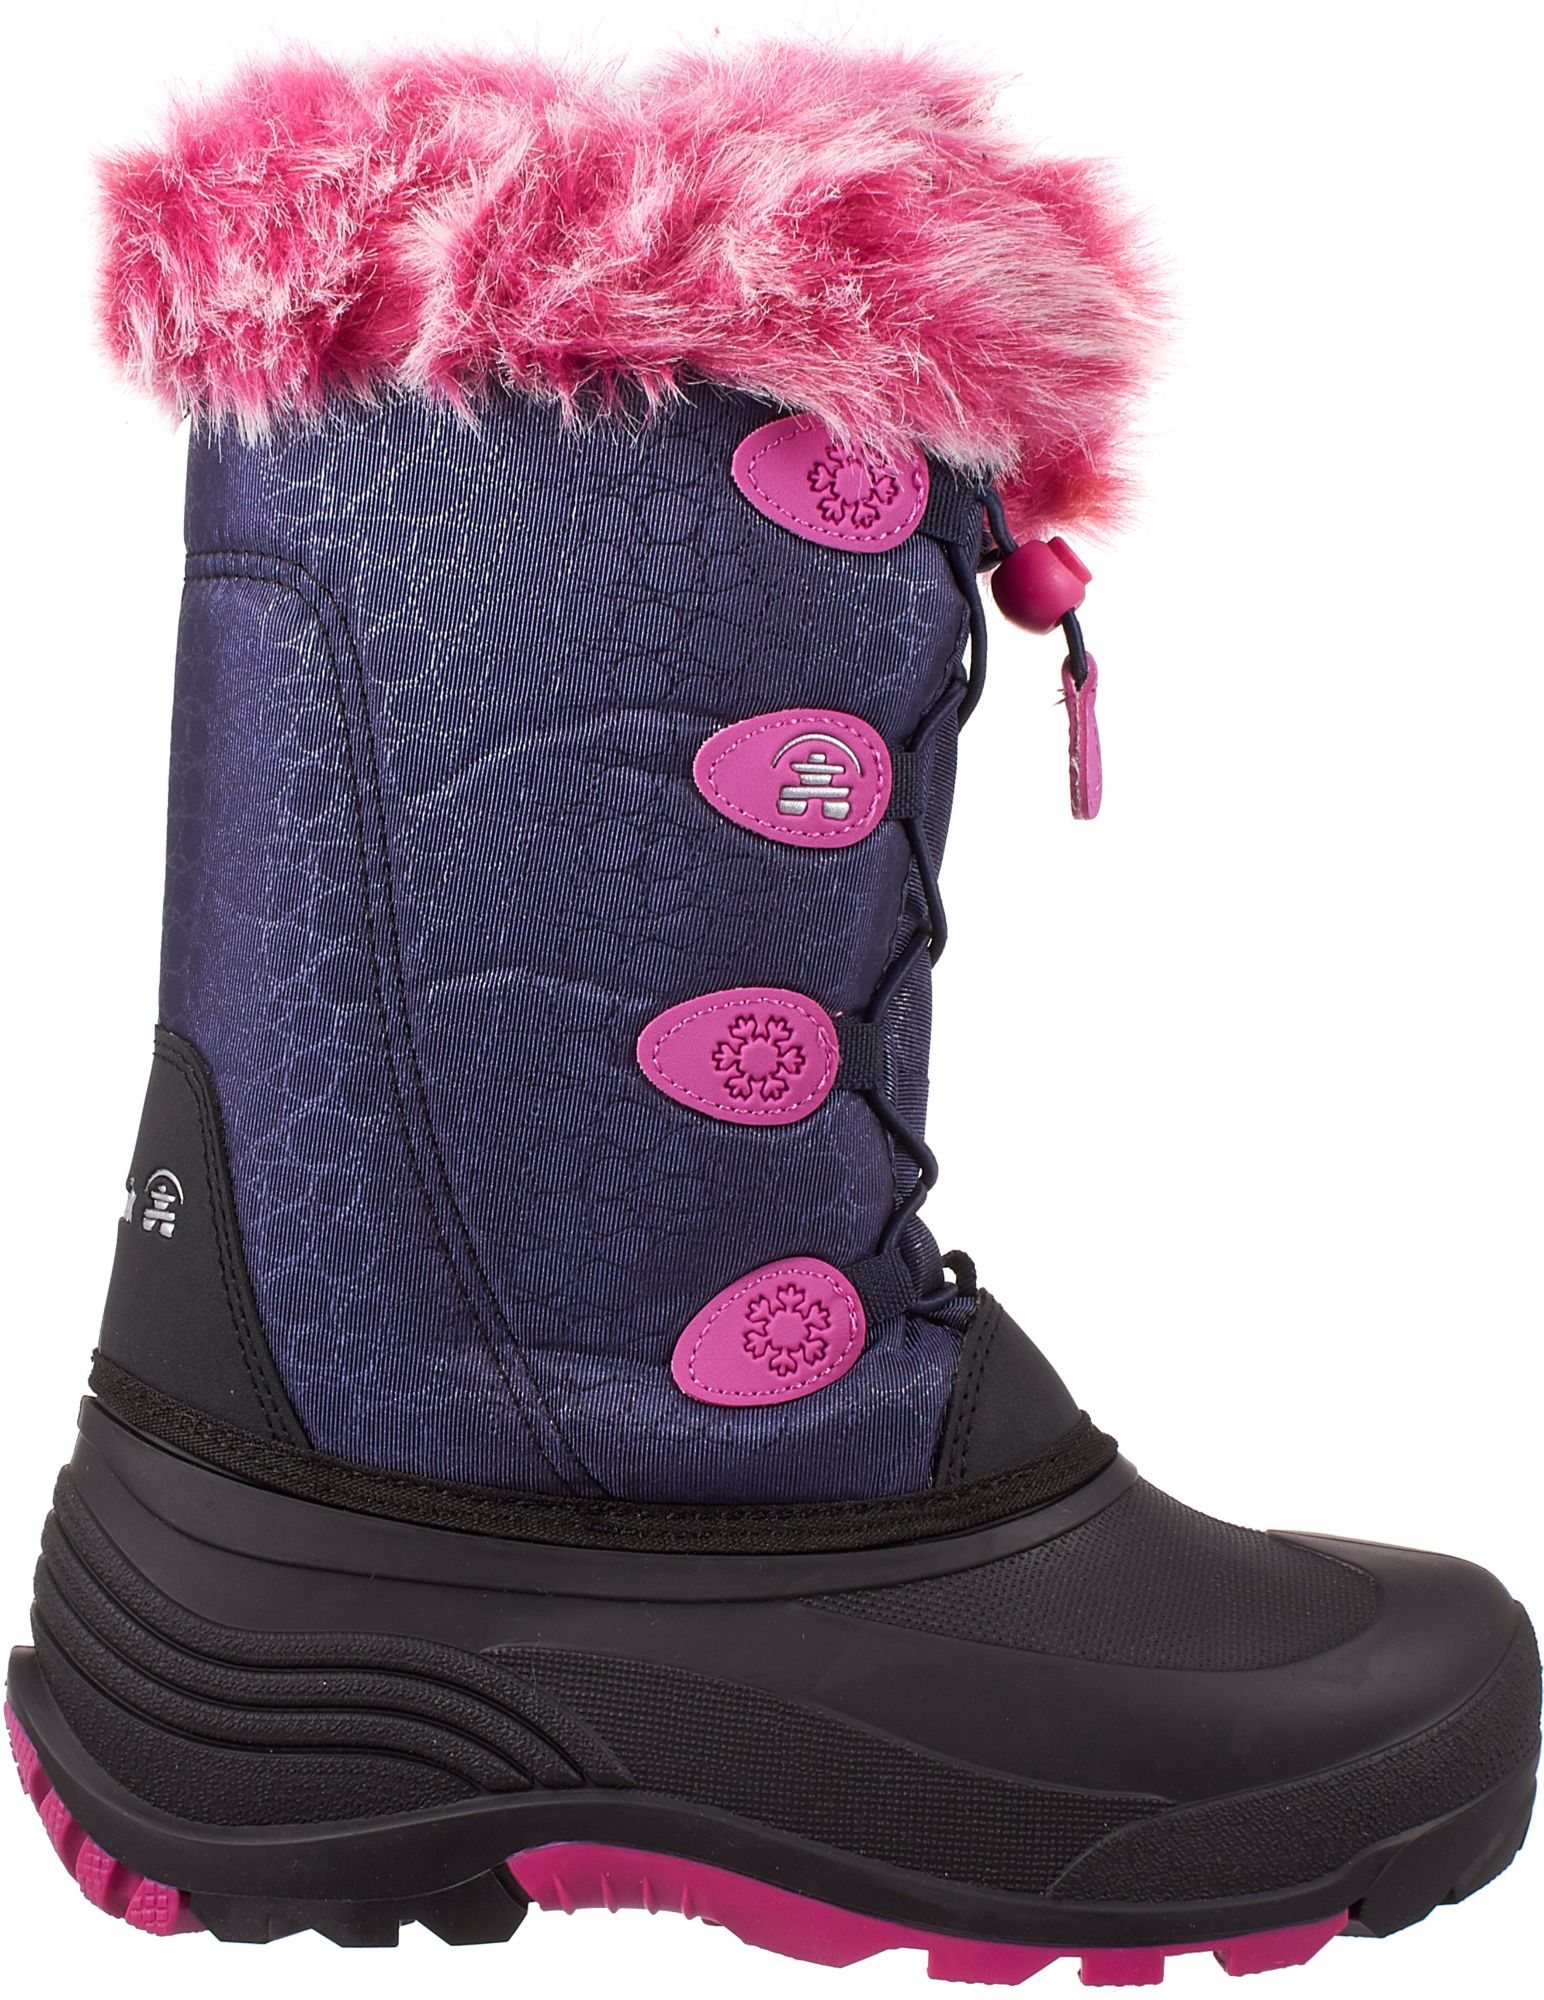 Girls&39 Snow Boots | DICK&39S Sporting Goods